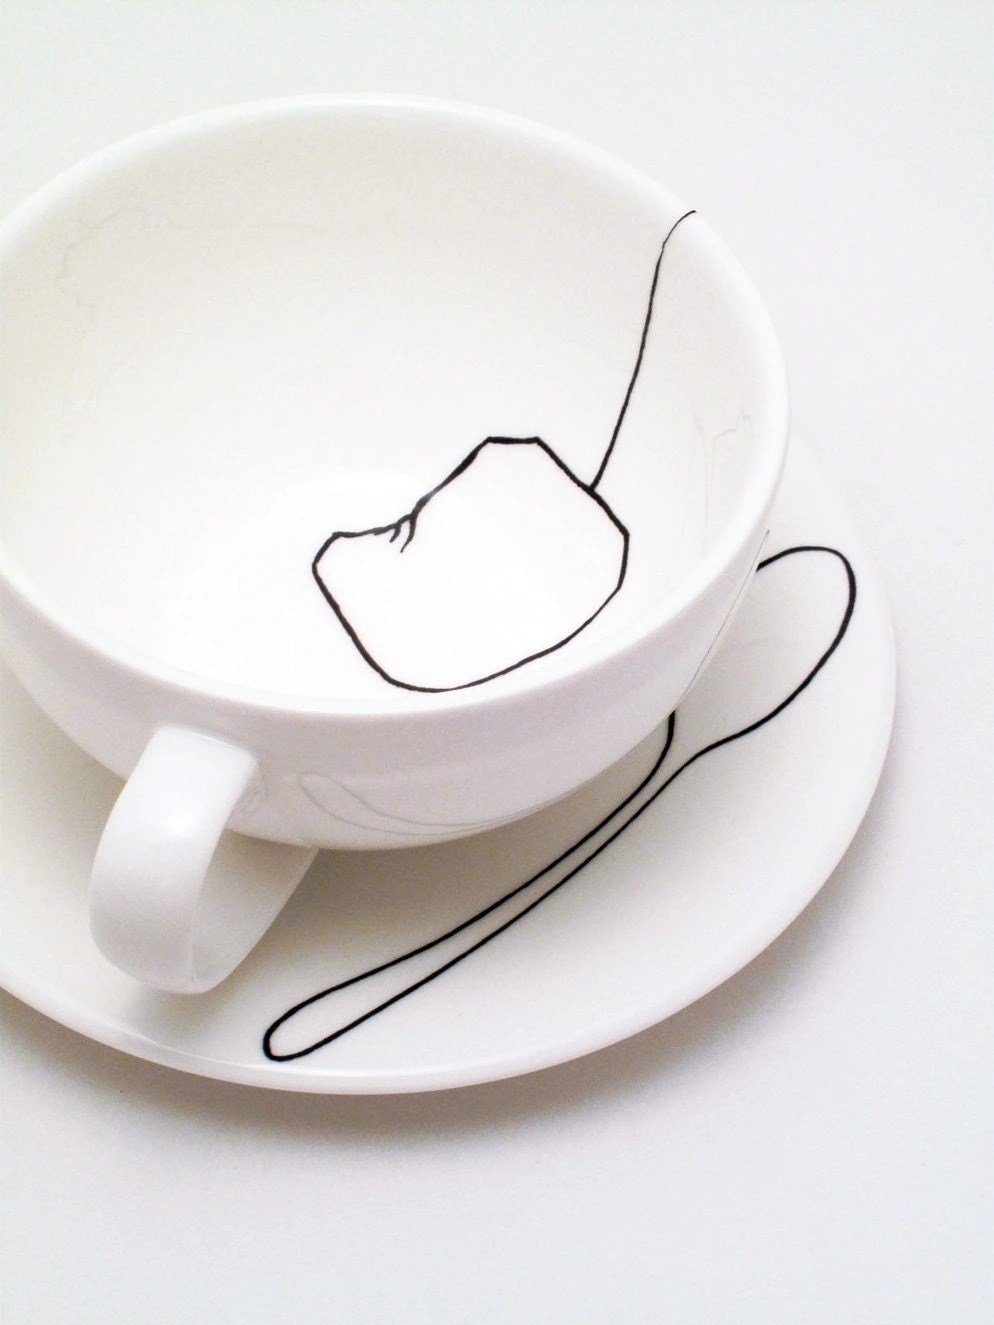 Teabag Teaspoon Cup and Saucer